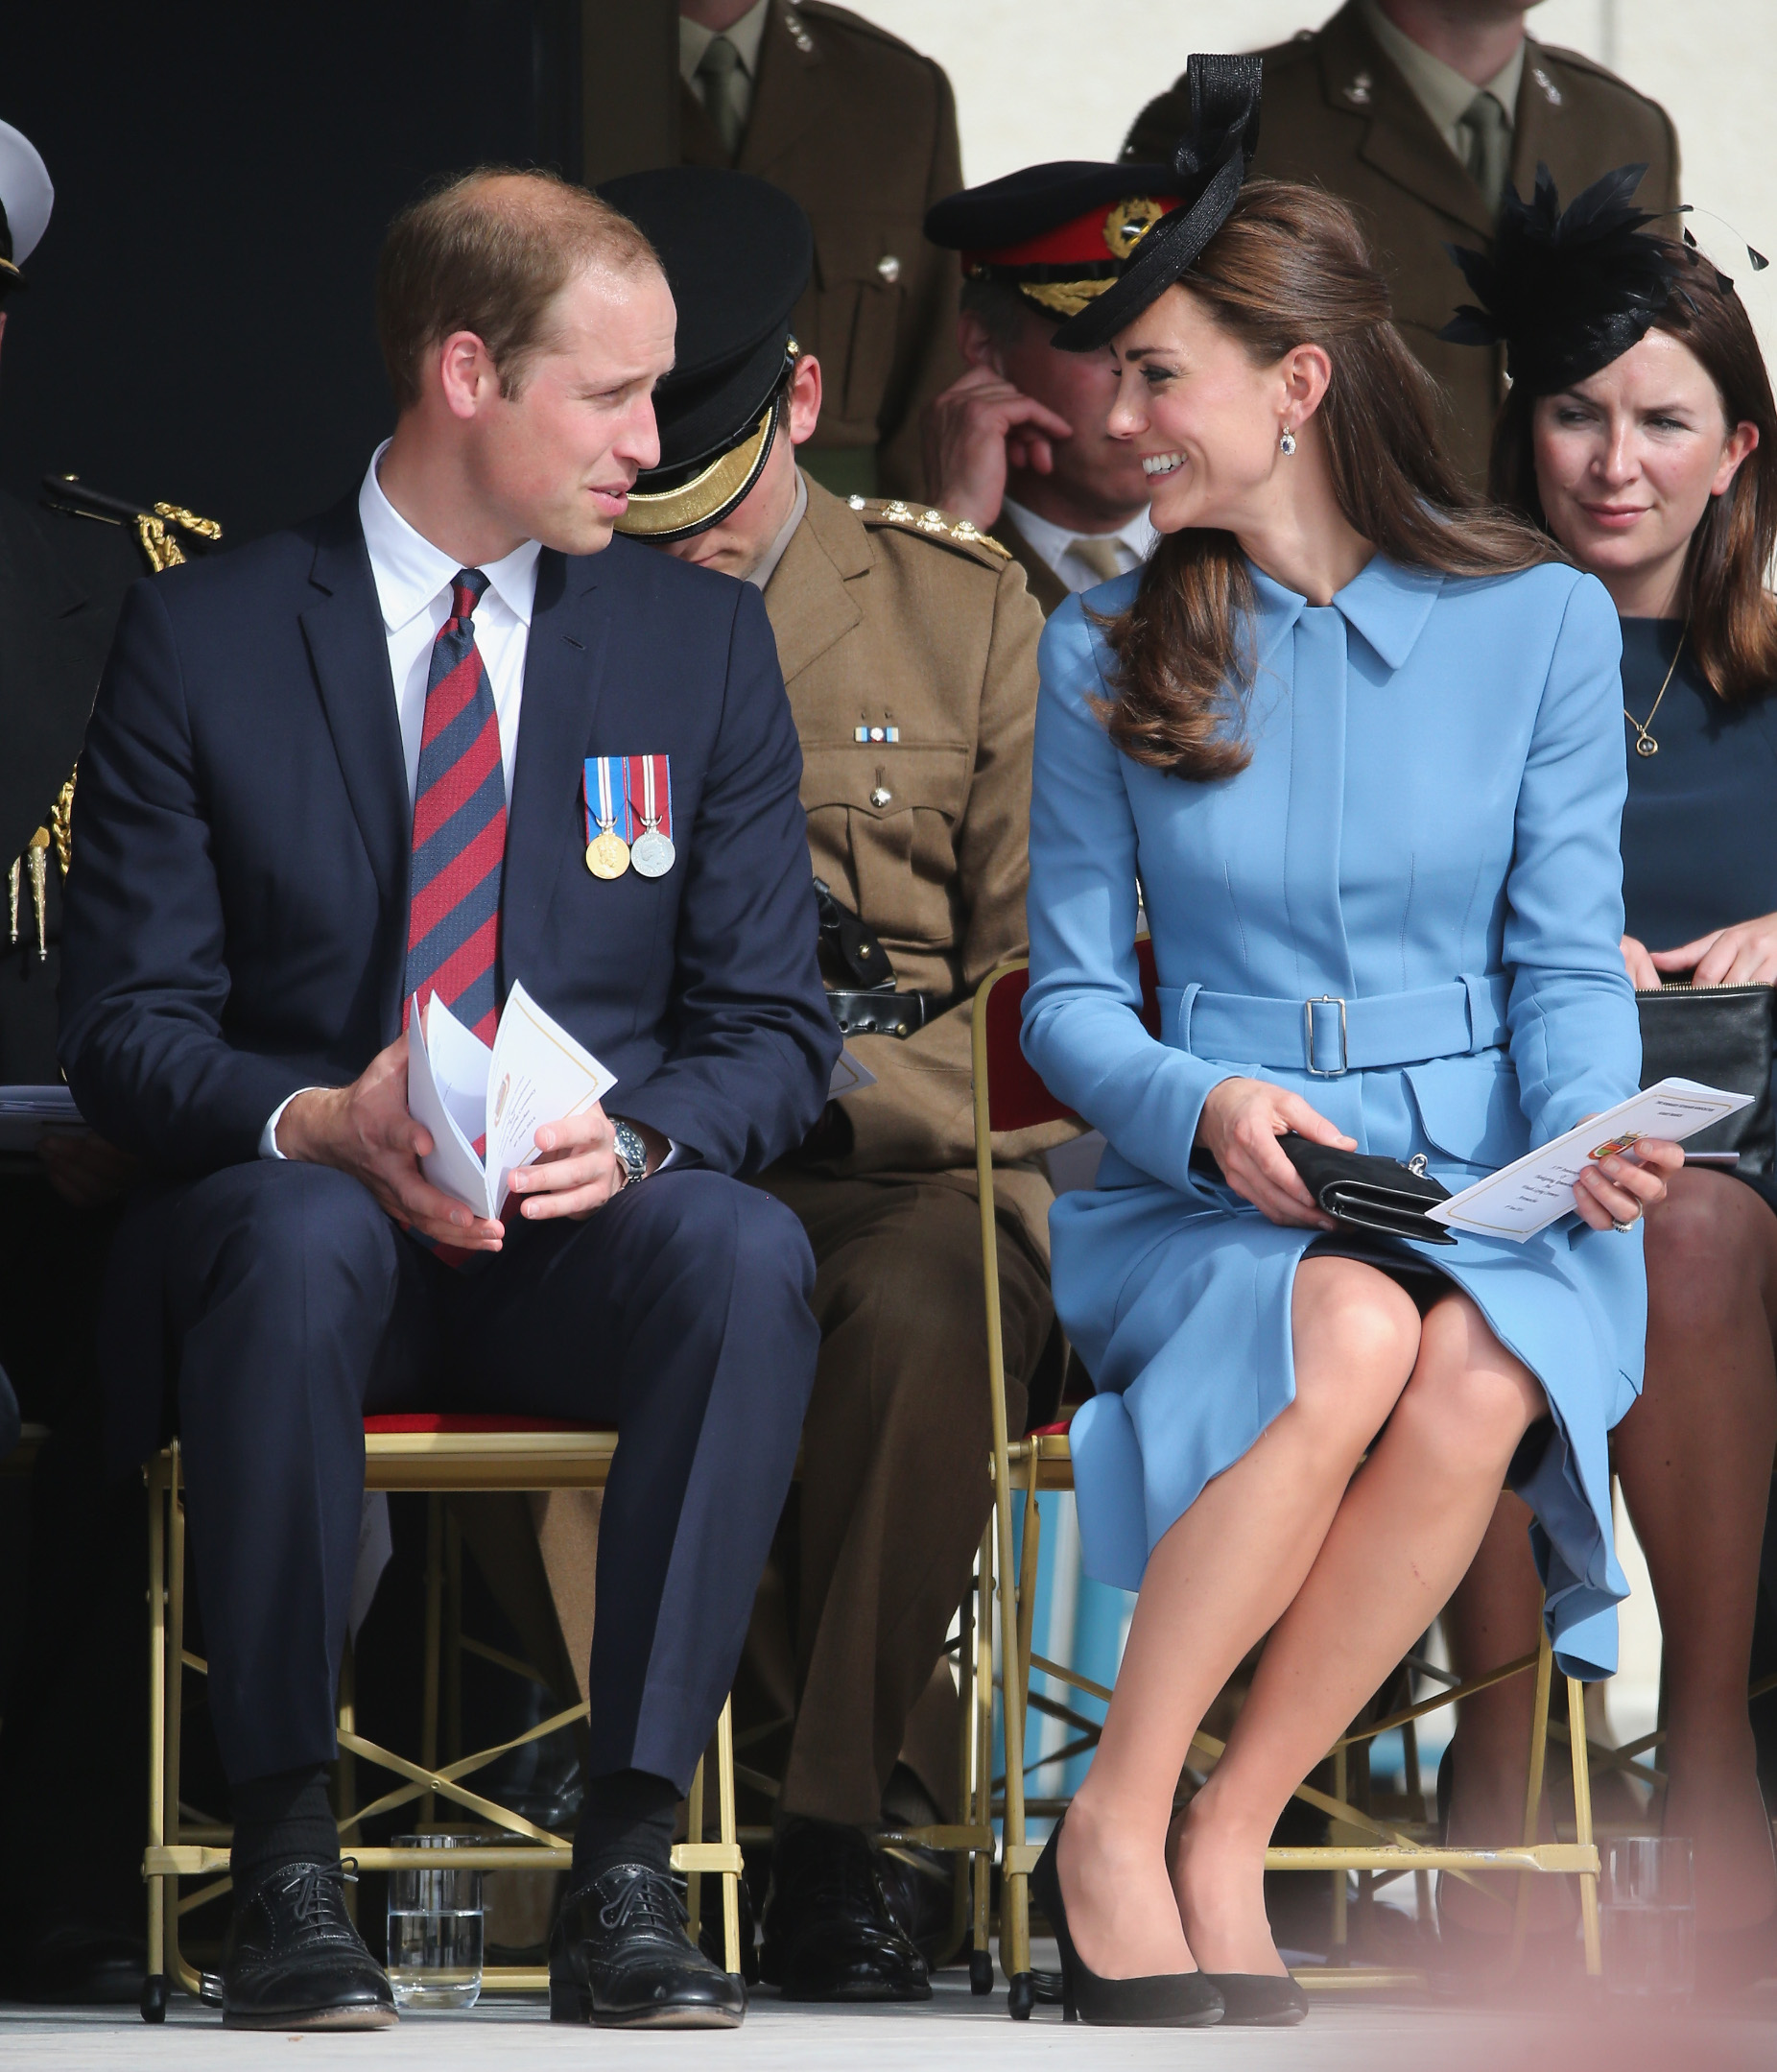 ARROMANCHES LES BAINS, FRANCE - JUNE 06:  Prince William, Duke of Cambridge and Catherine, Duchess of Cambridge chat as they attend the 70th anniversary of the D-Day landings on June 6, 2014 in Arromanches Les Bains, France.  Friday 6th June is the 70th anniversary of the D-Day landings which saw 156,000 troops from the allied countries including the United Kingdom and the United States join forces to launch an audacious attack on the beaches of Normandy, these assaults are credited with the eventual defeat of Nazi Germany. A series of events commemorating the 70th anniversary are planned for the week with many heads of state travelling to the famous beaches to pay their respects to those who lost their lives.  (Photo by Christopher Furlong/Getty Images)